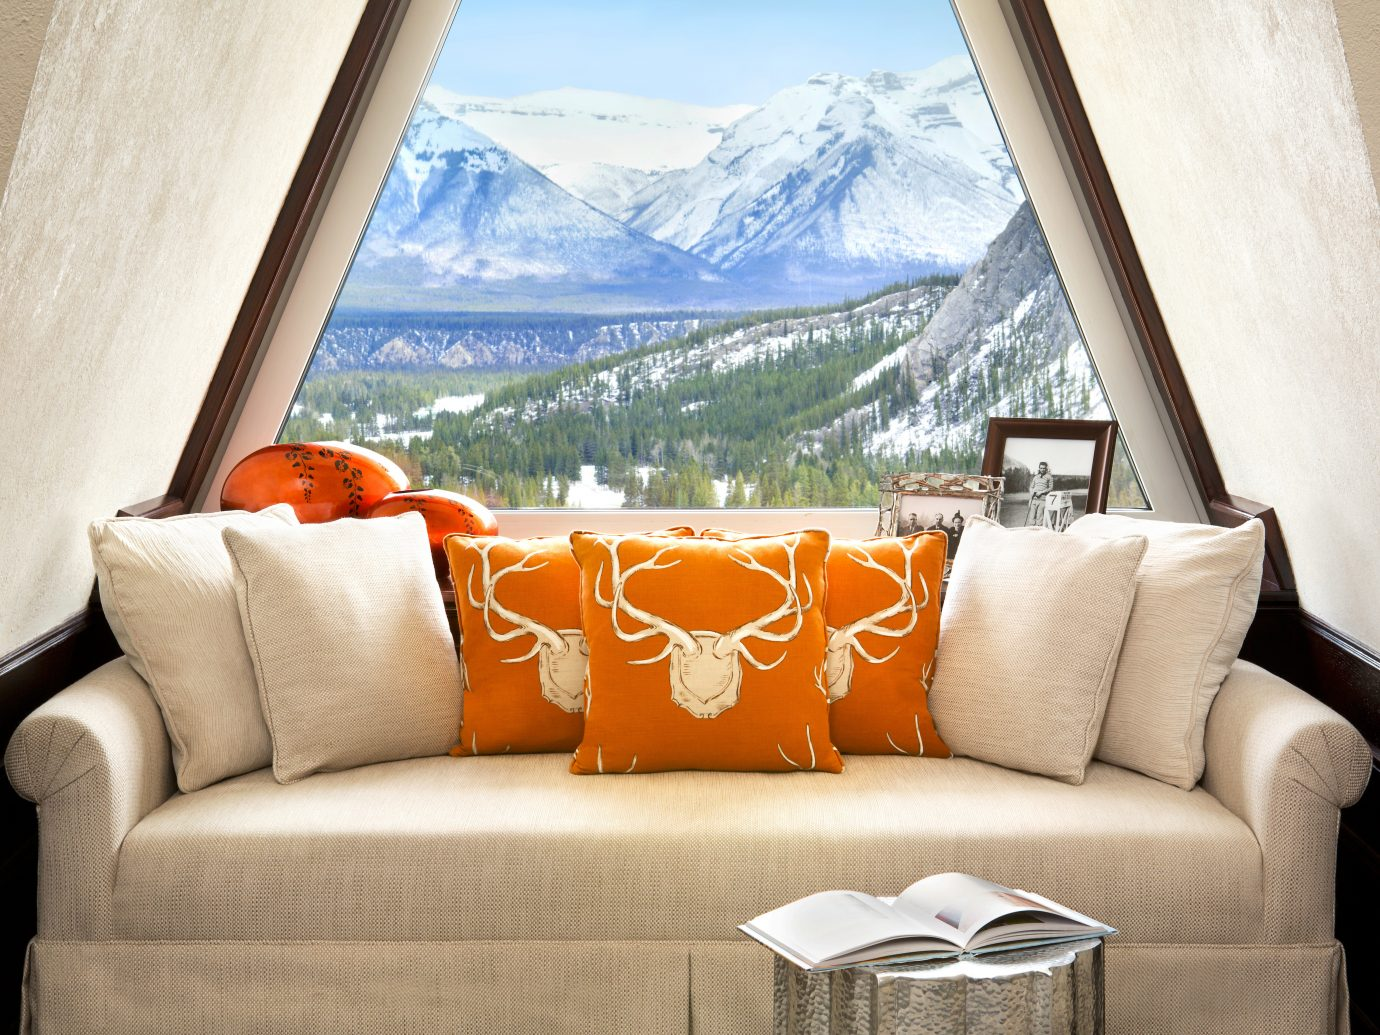 Health + Wellness Hotels Living Modern Mountains Resort Scenic views Spa Retreats Trip Ideas sofa room living room property house furniture home seat interior design estate Suite window cottage apartment couch orange overlooking